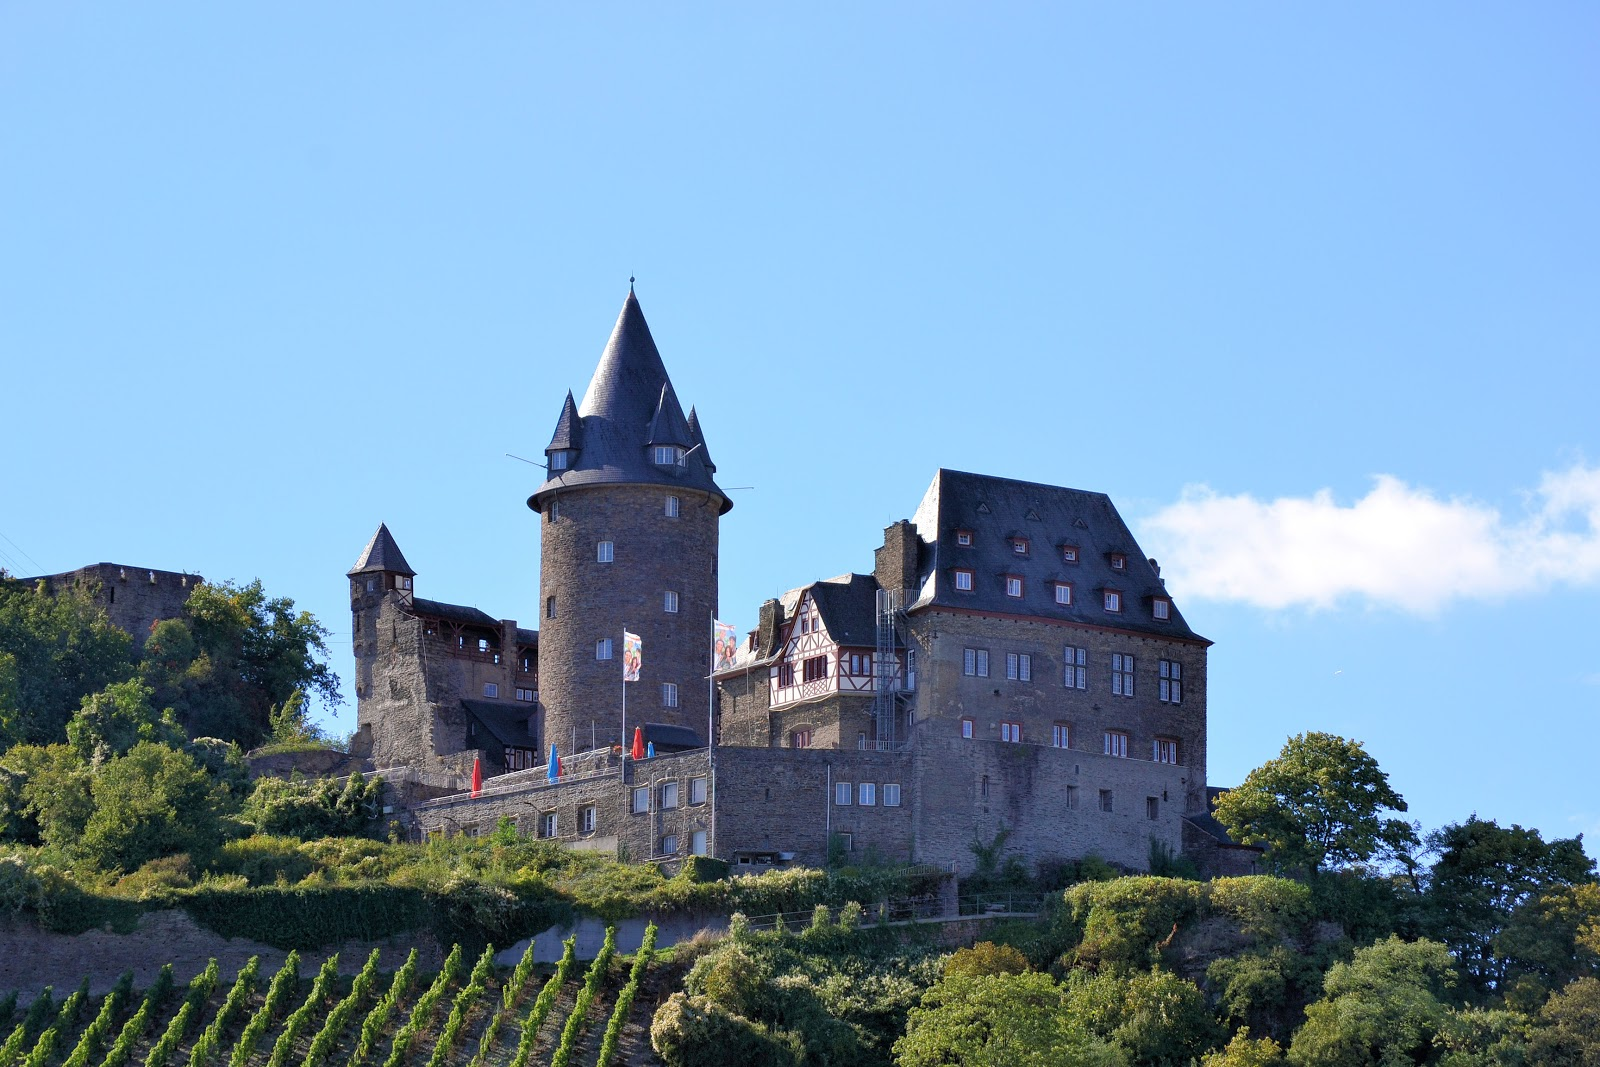 At first glance, Stahleck Castle conjures images of Hogwarts.